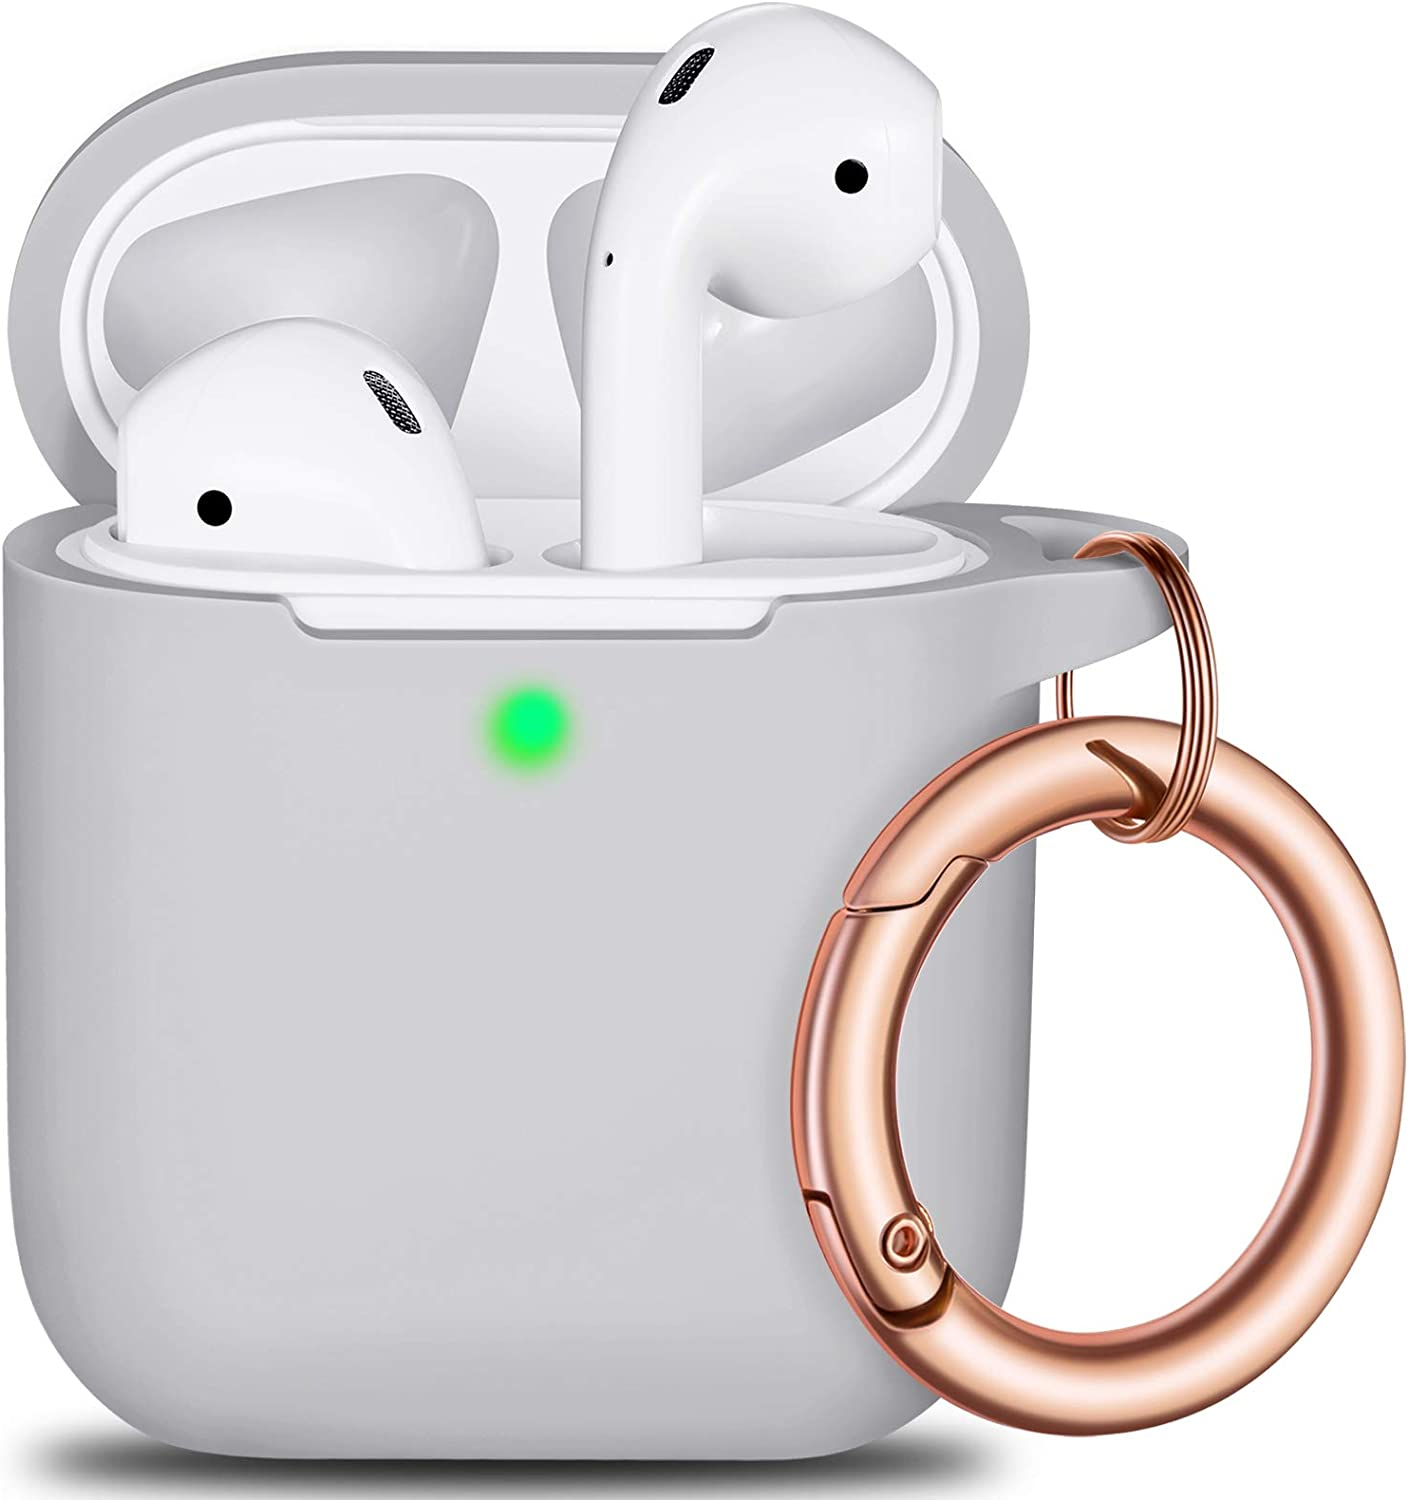 AirPods Case Cover Keychain, Full Protective Silicone AirPods Accessories Skin Cover for Women Girl with Apple AirPods Wireless Charging Case,Front LED Visible-Pebble